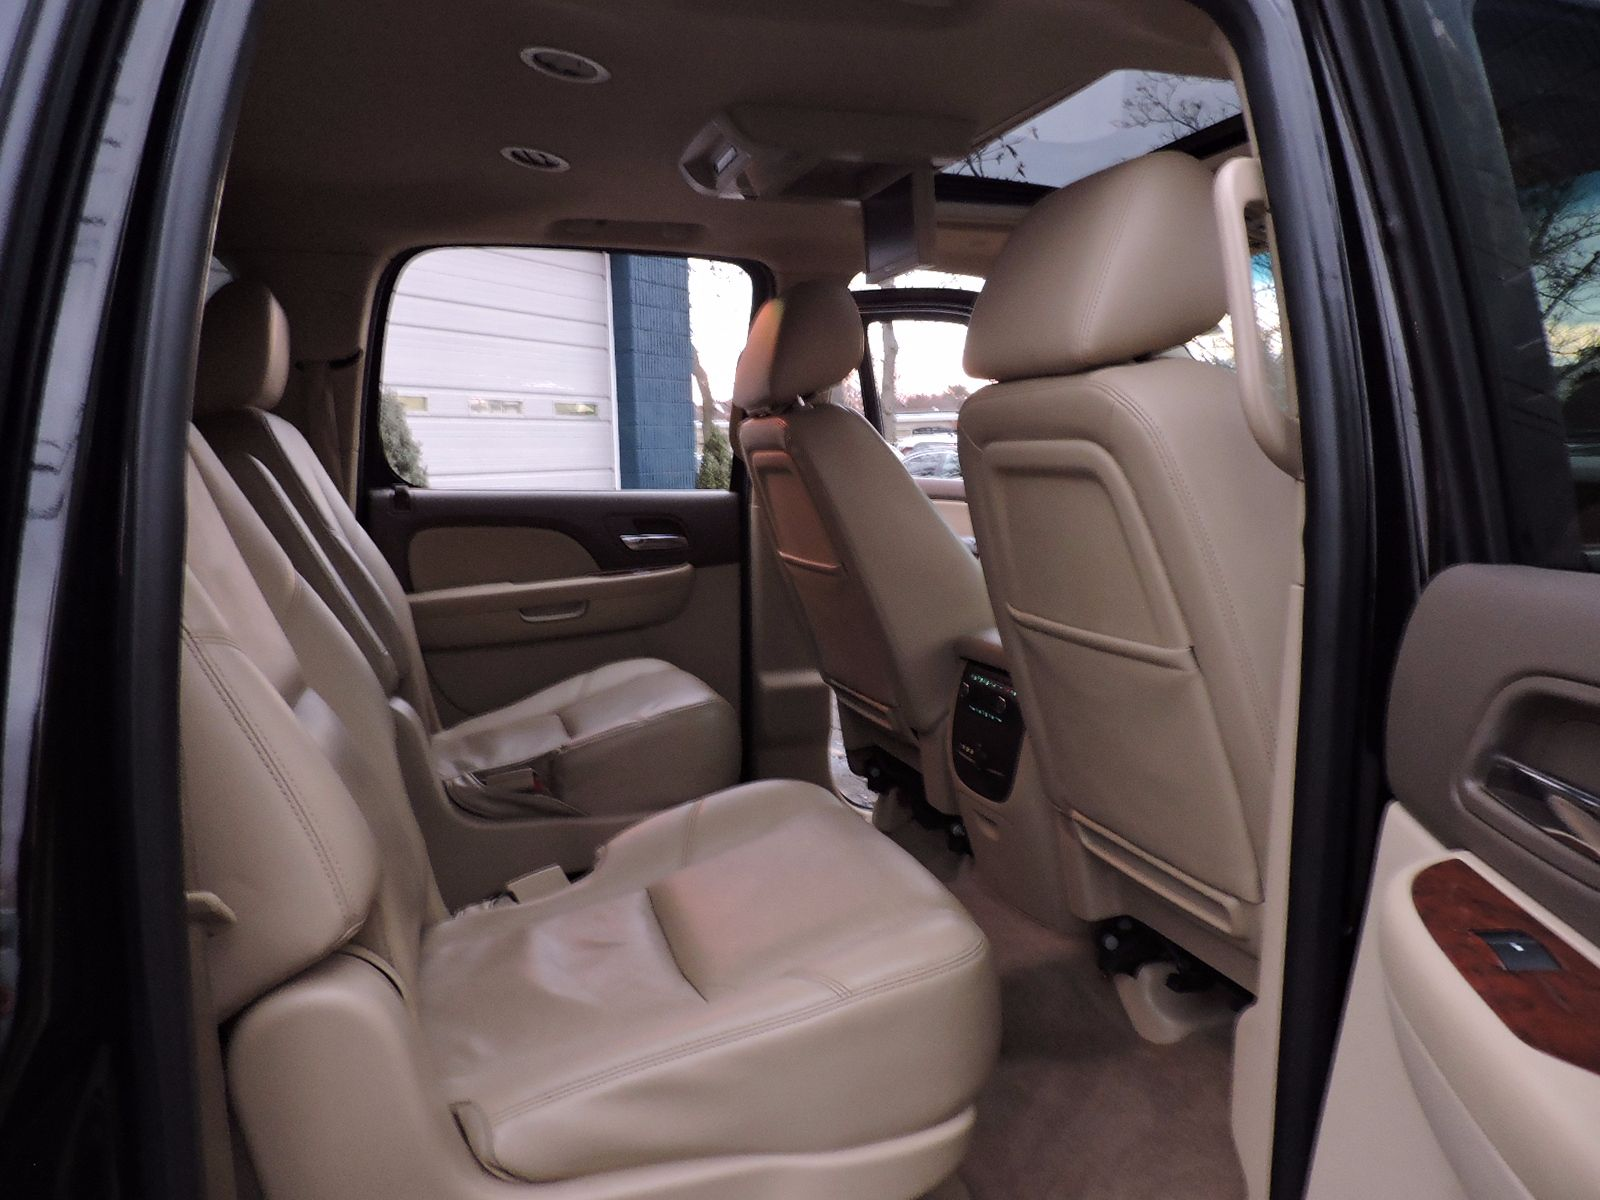 2013 Chevrolet Suburban LTZ - All Wheel Drive - Navigation - DVD